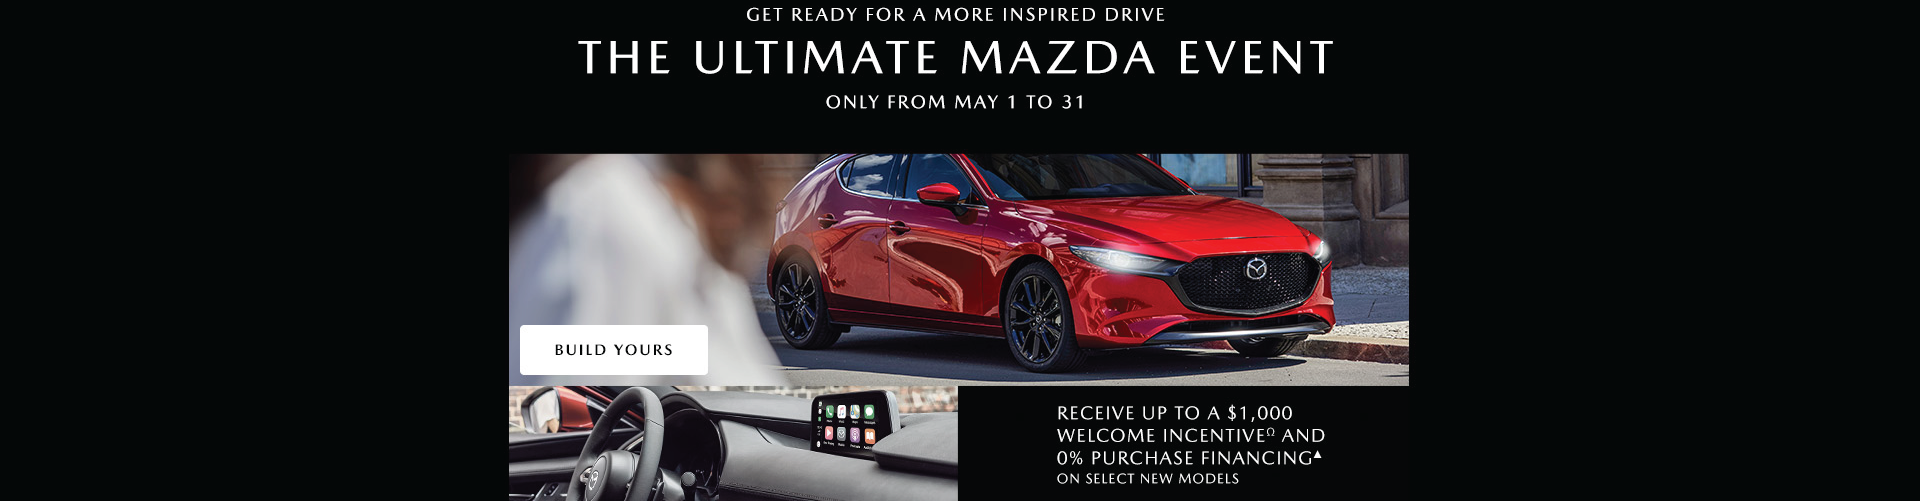 Updated: The Ultimate Mazda event_EN